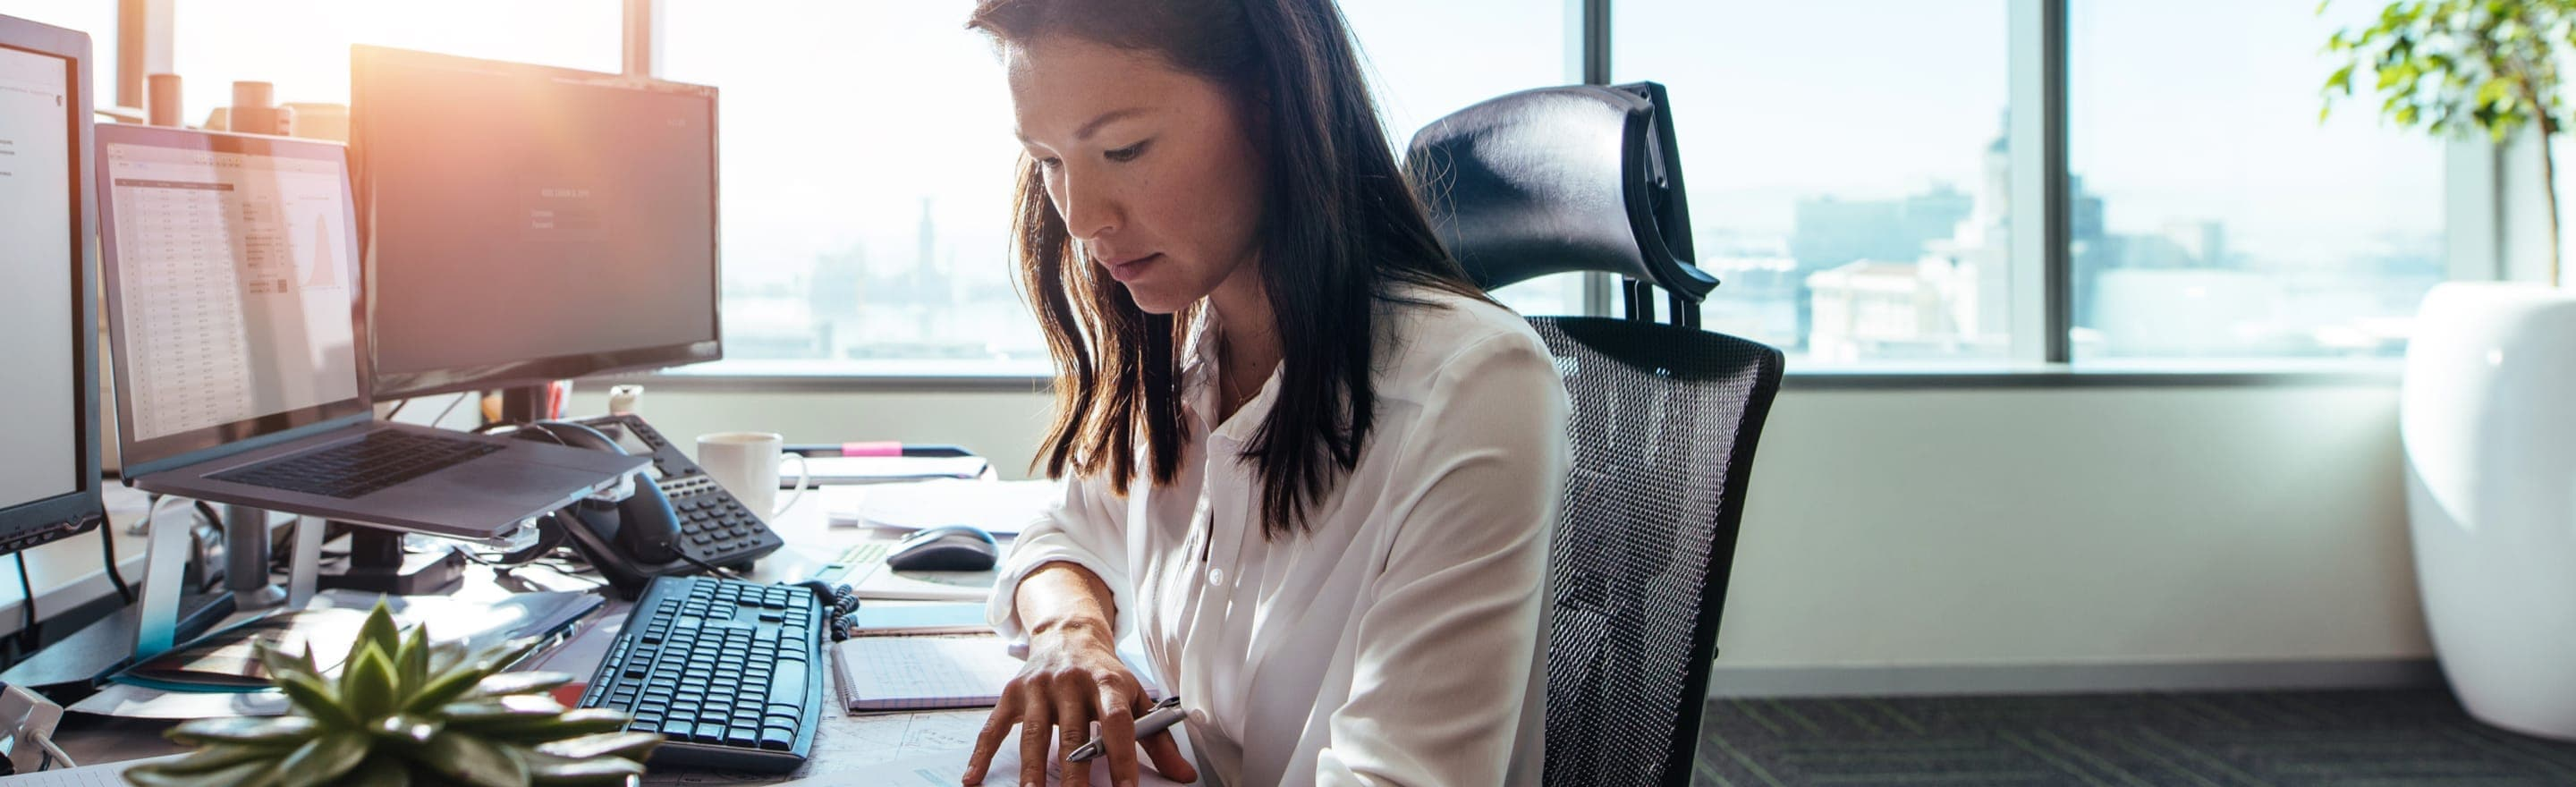 A business woman working at her desk in an open, light-filled office.